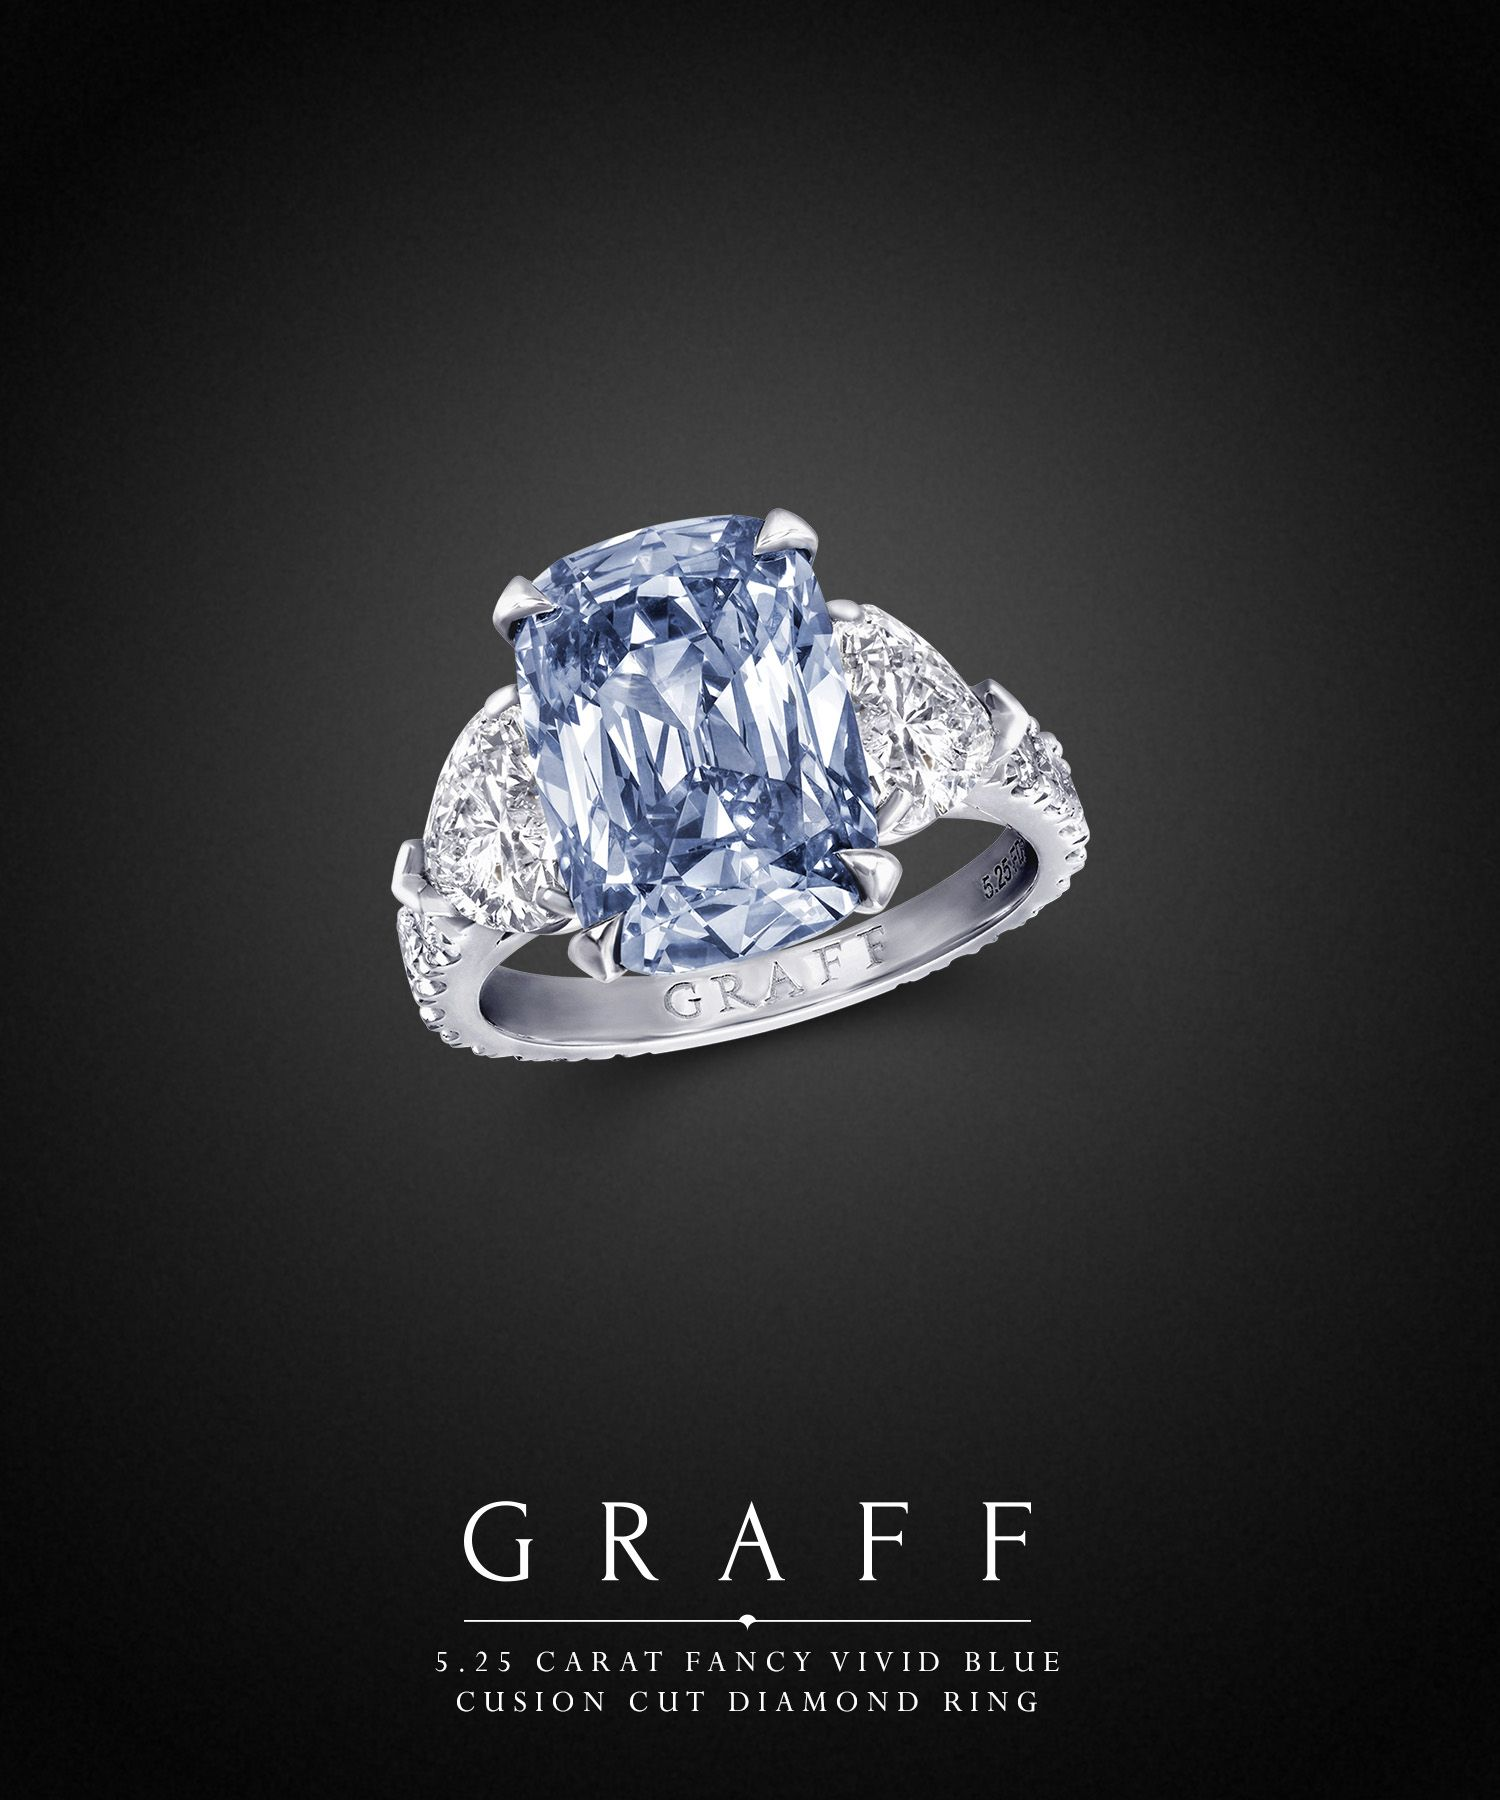 Graff Diamonds 5 25 carat Fancy Vivid Blue Cushion Cut Diamond